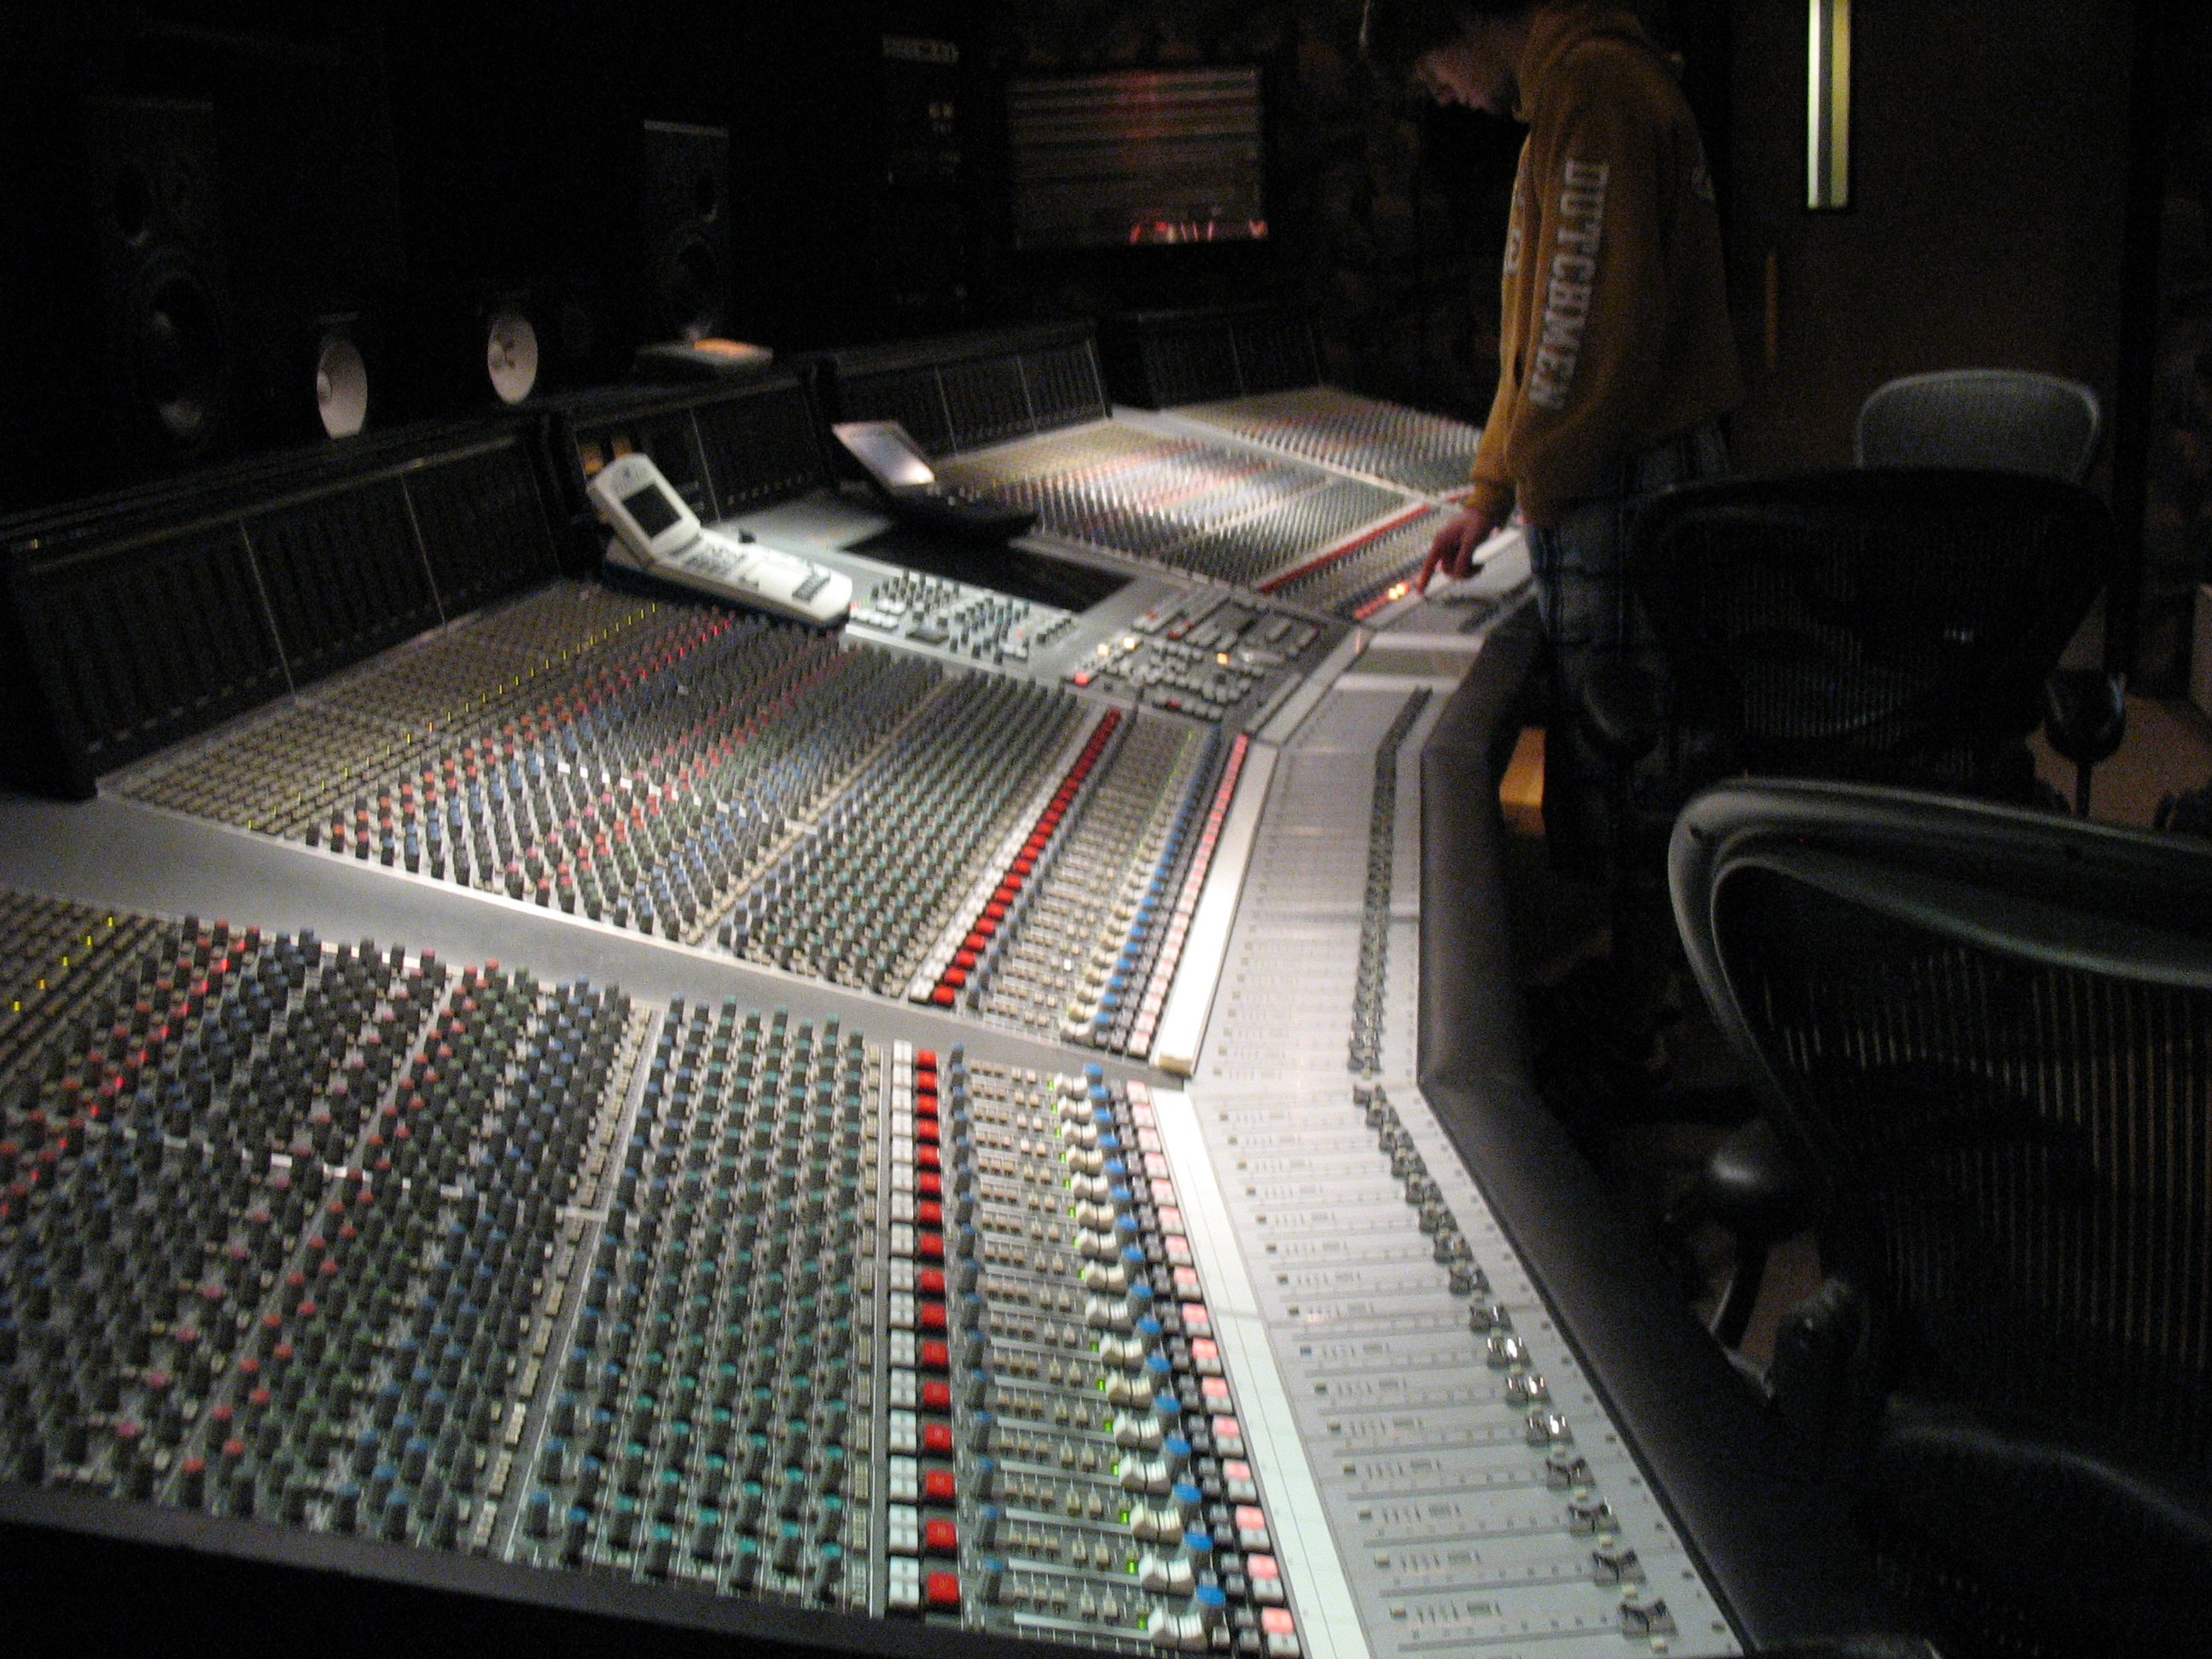 SSL J 9000, Recording Audio Engineer - How To Lose Clients